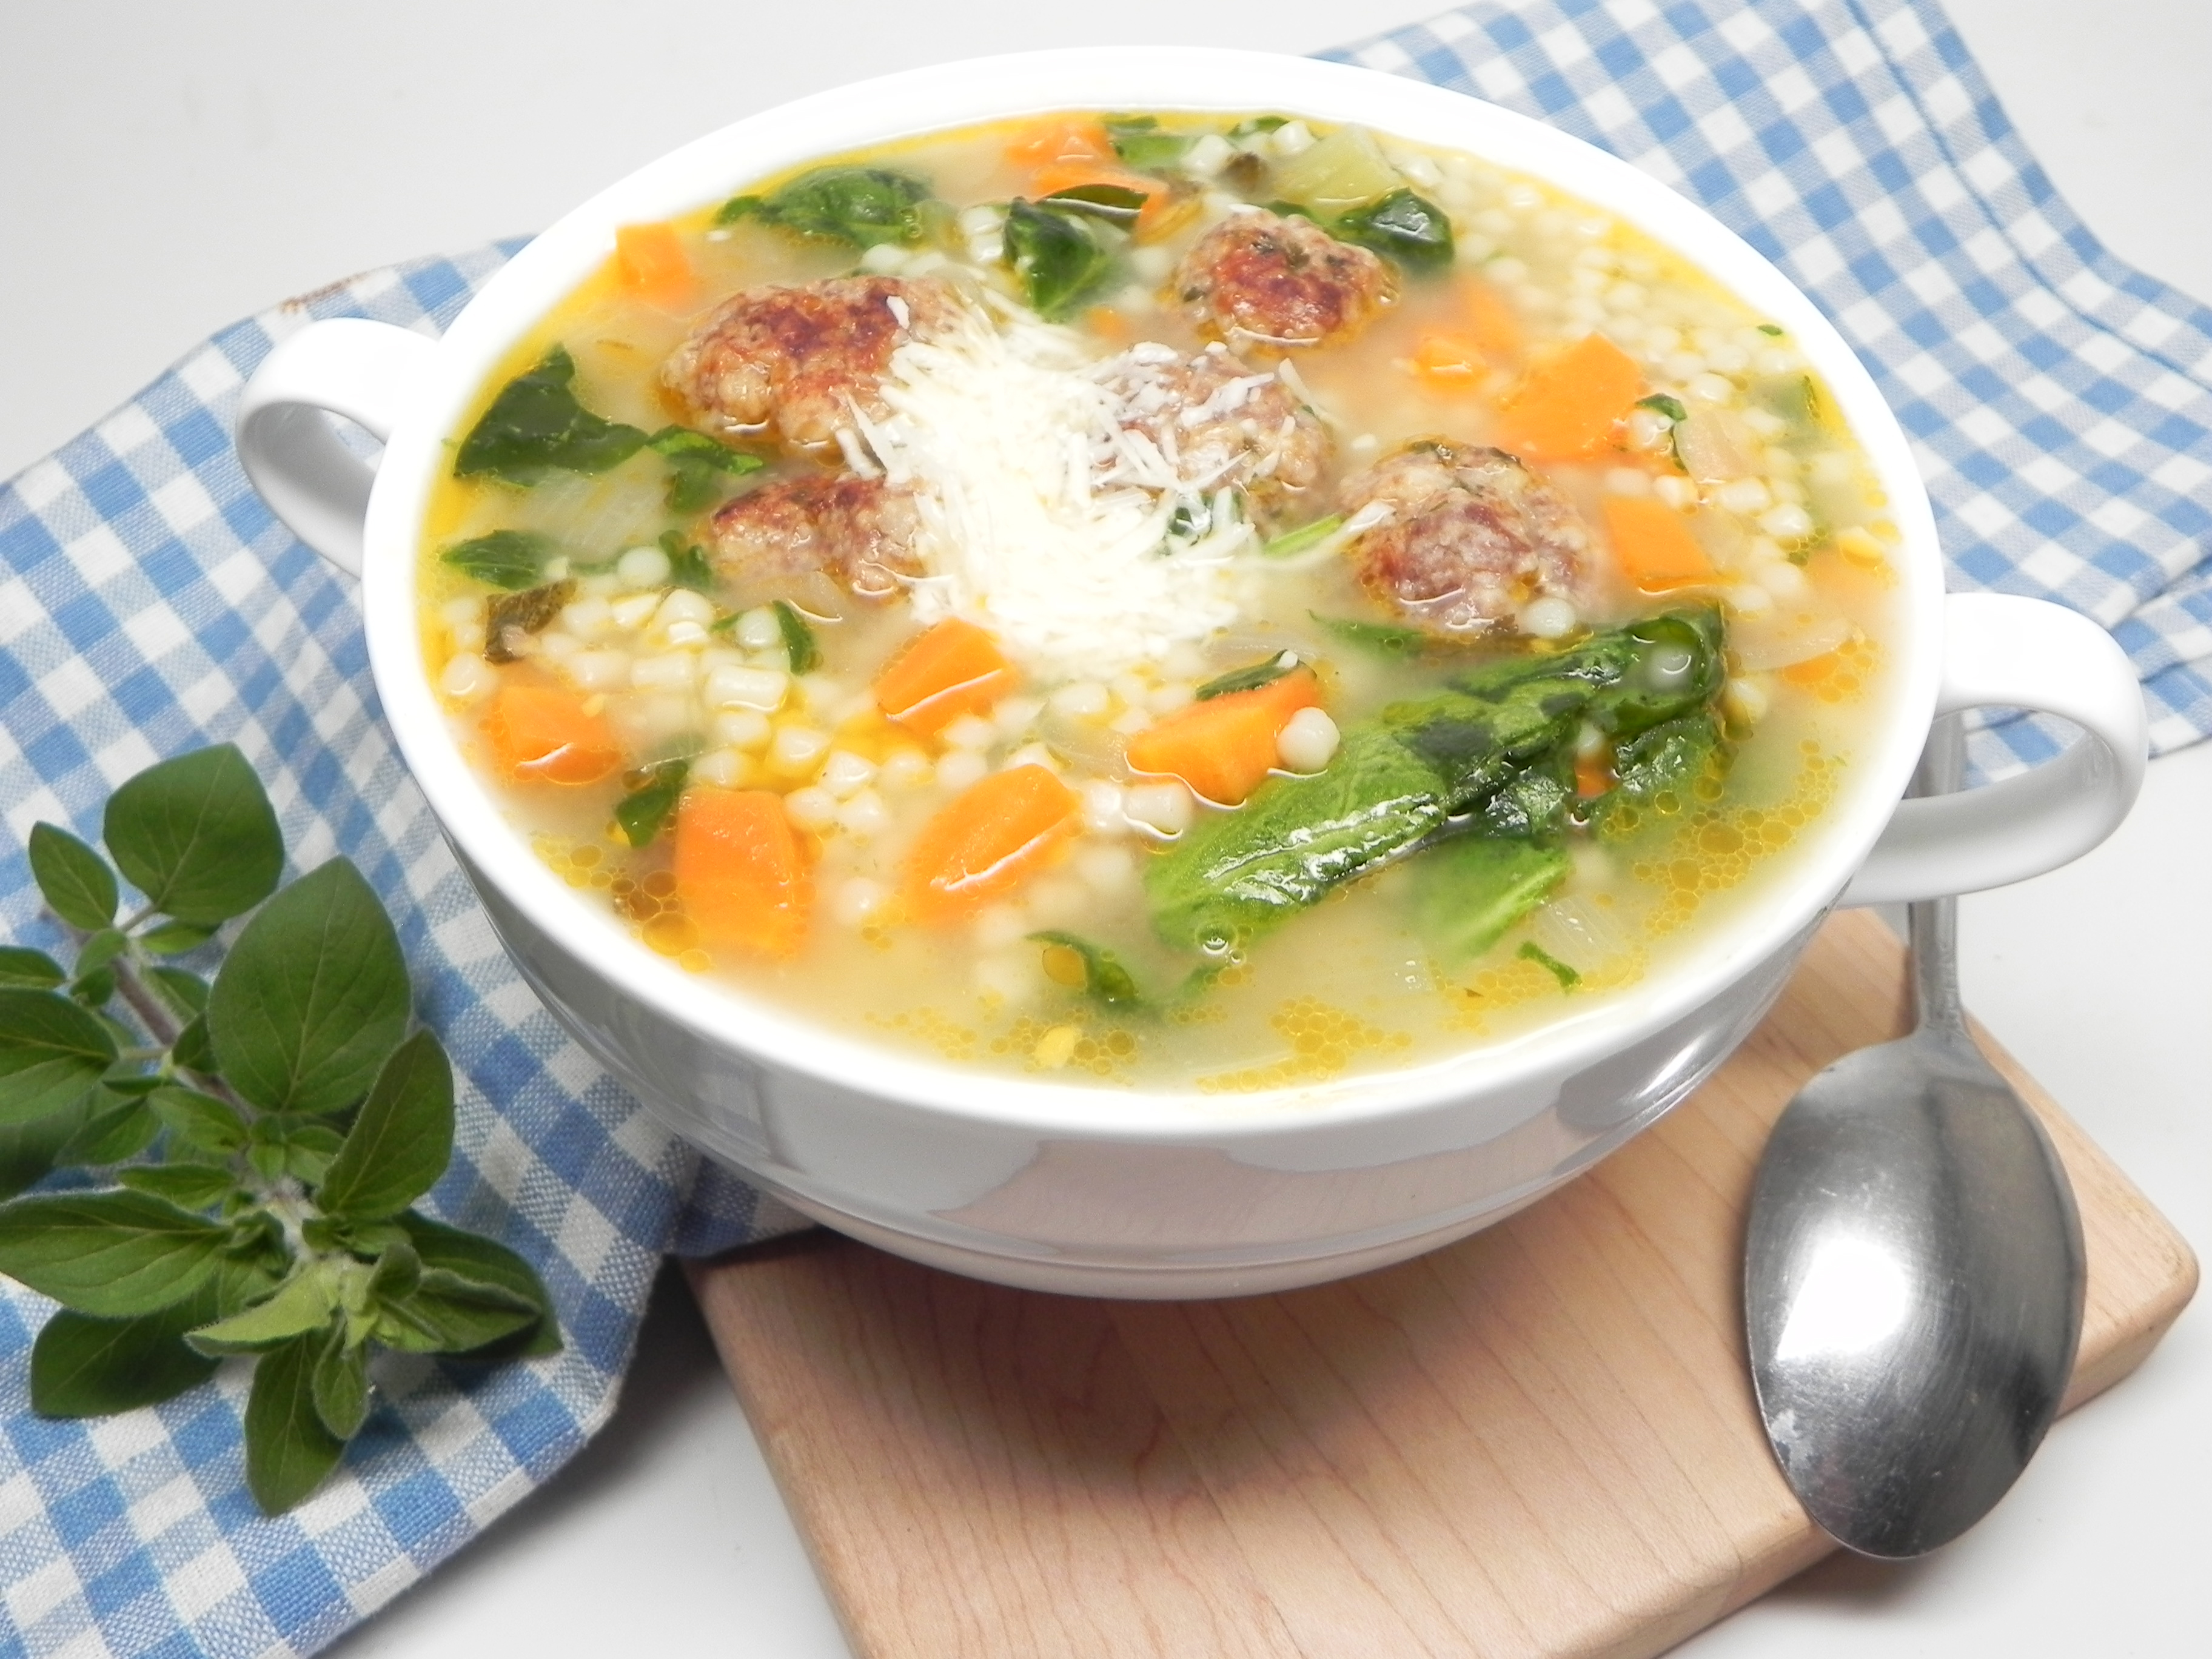 Italian Wedding Soup with Venison Meatballs